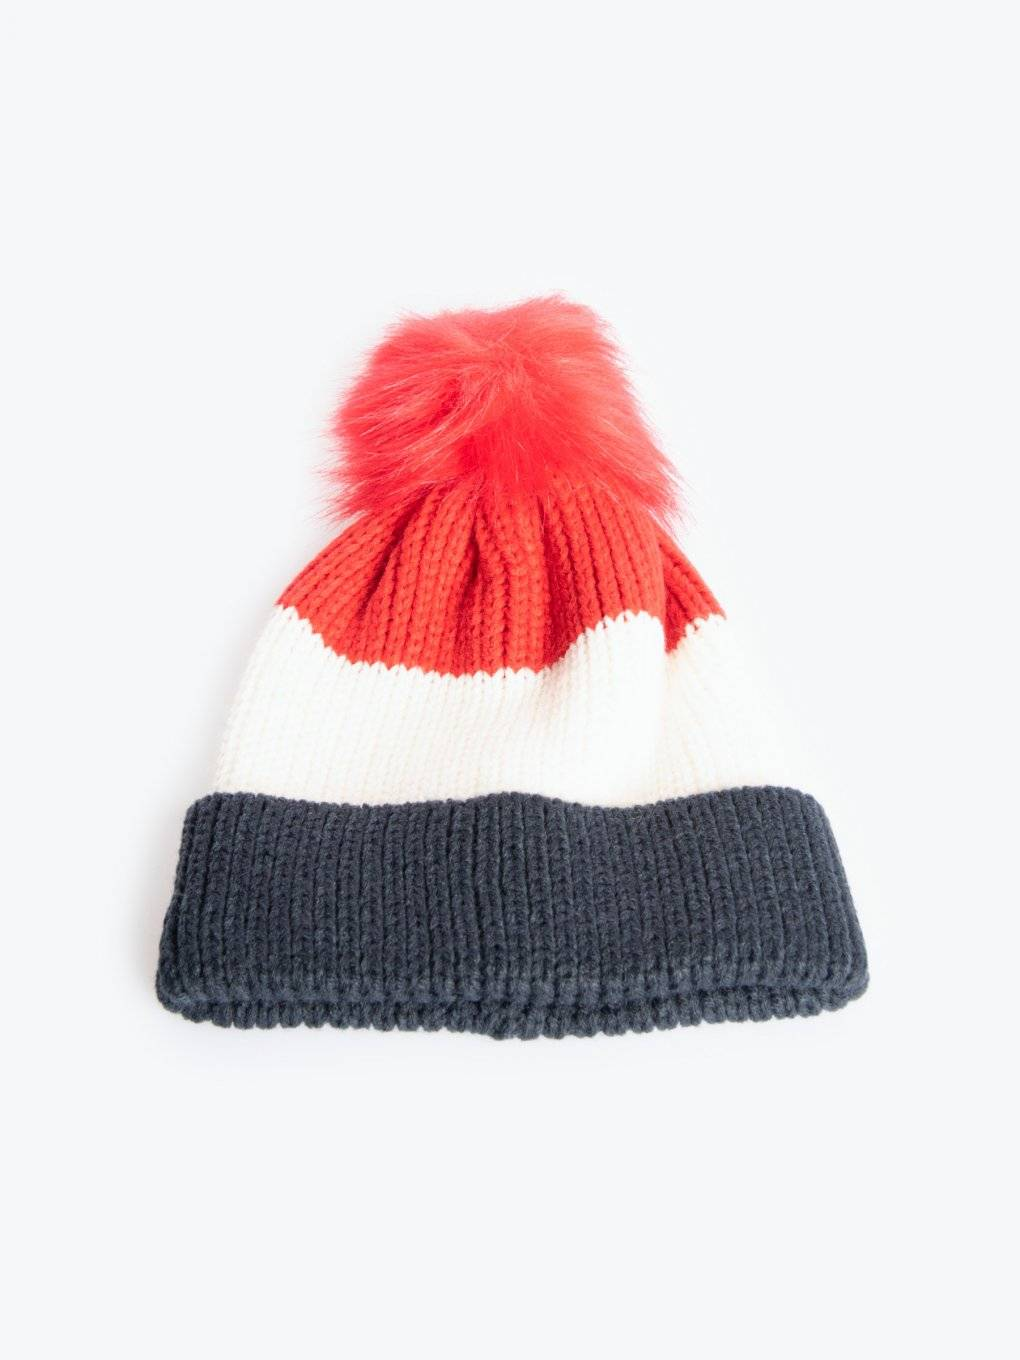 Knitted beanie with faux fur pompom